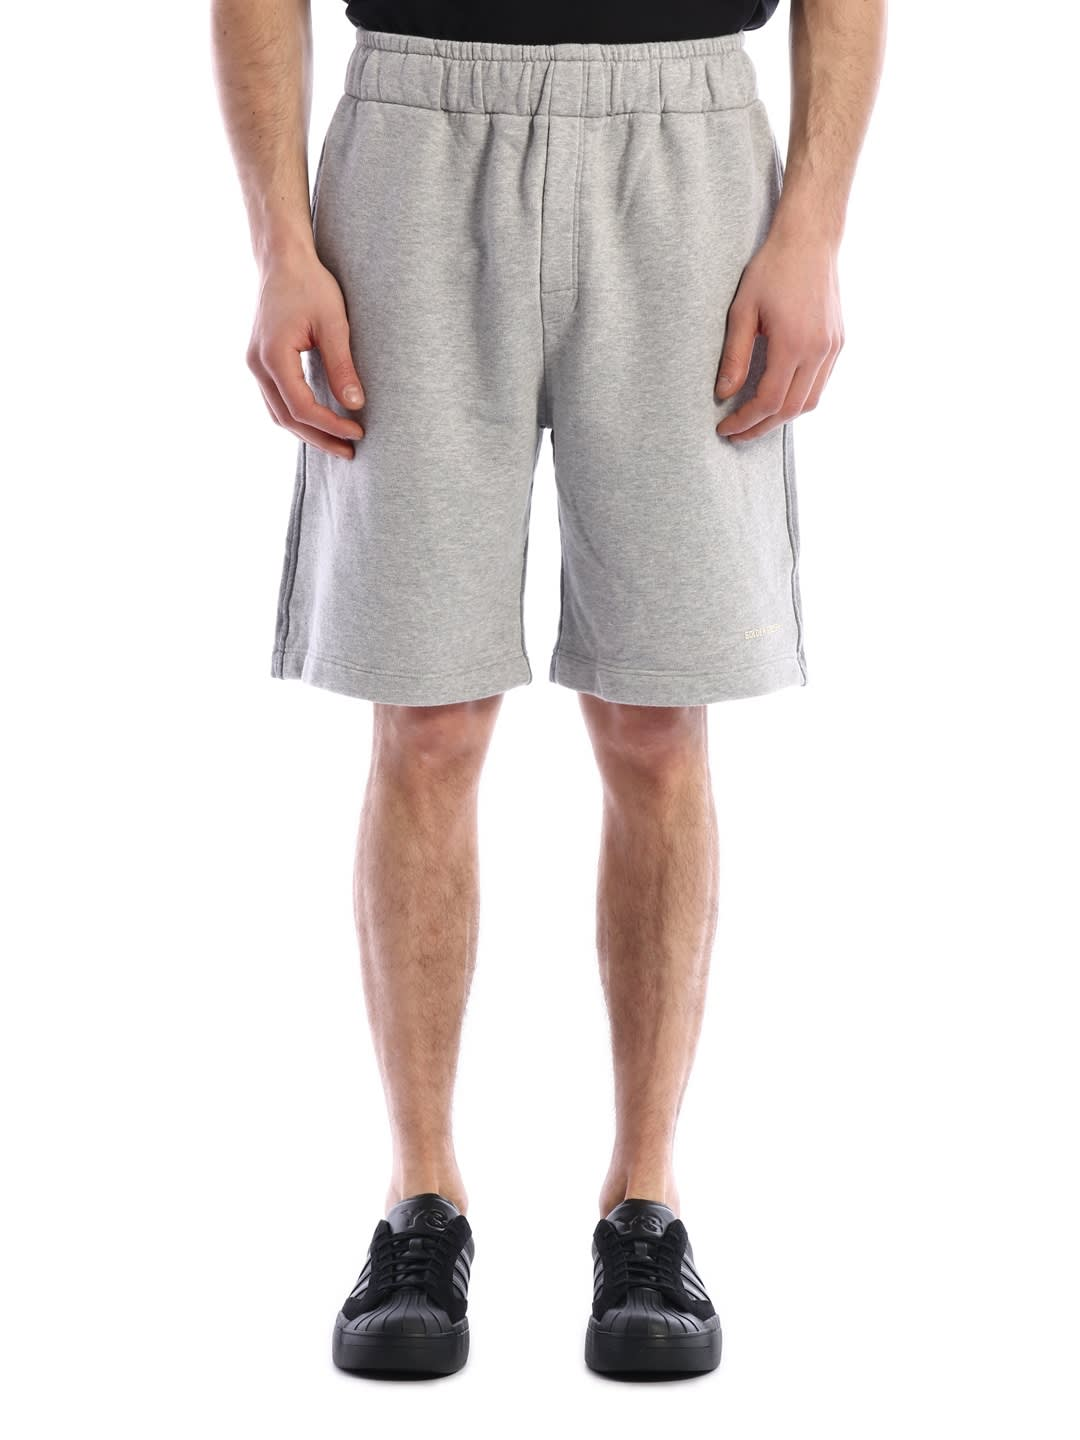 Grey cotton shorts featuring an elasticated waistband, side pockets, a rear pocket and a relaxed fit. The model is 183 tall and wears size MComposition: 100% Cotton